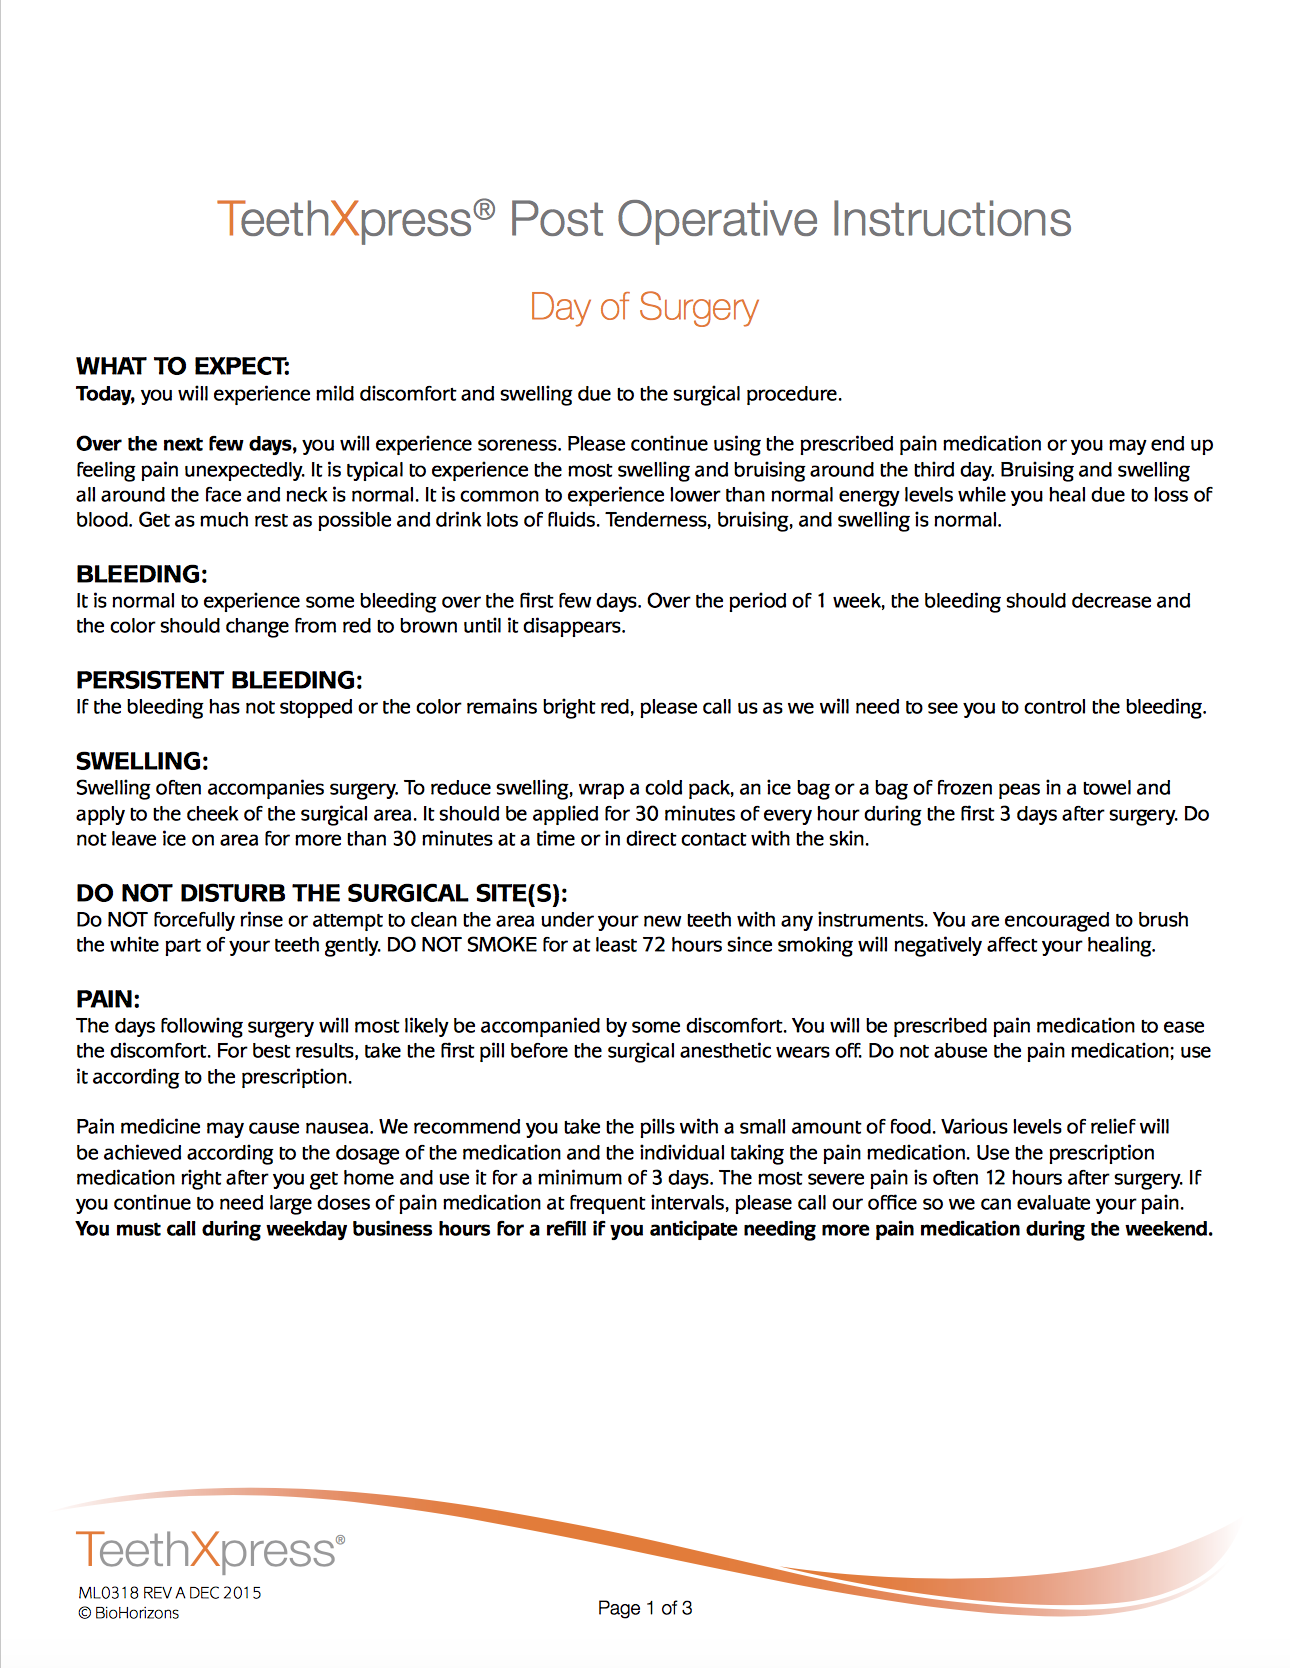 TeethXpress Post Op Instructions page 1